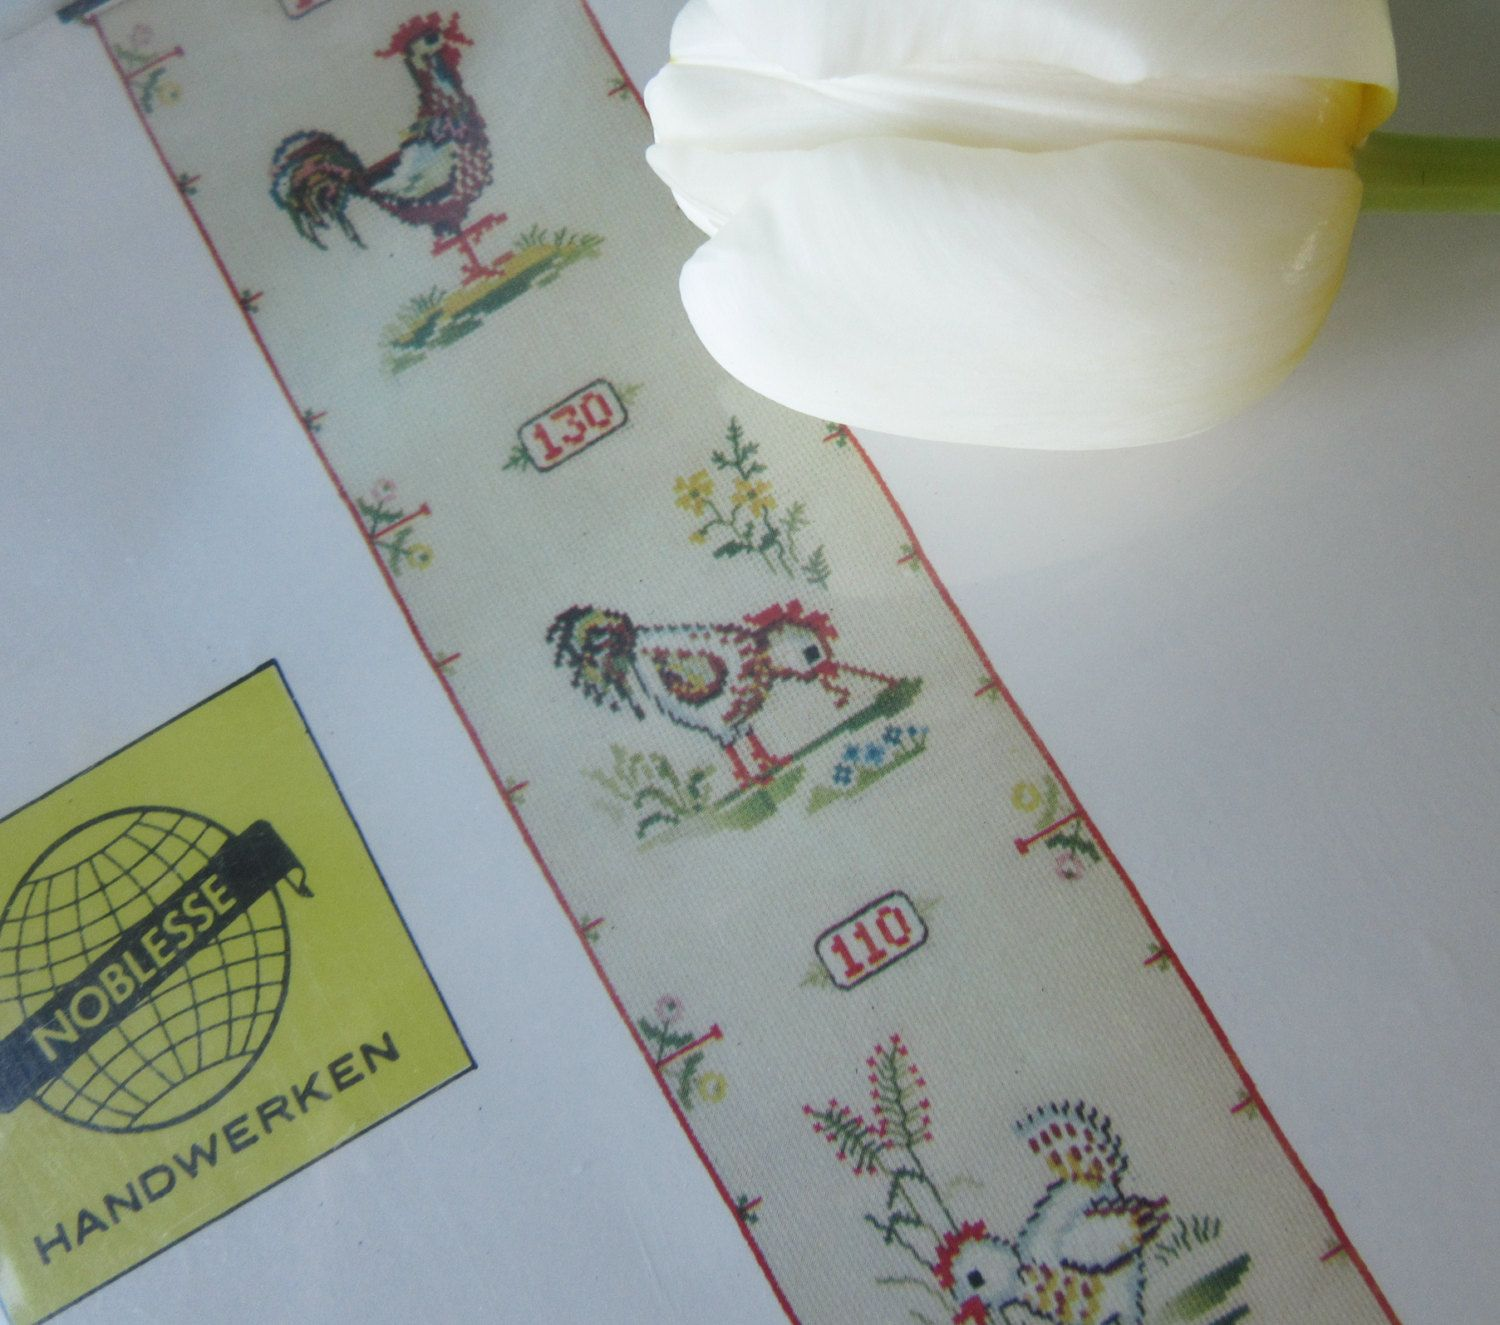 Vintage Embroidery Kit of a Growth Chart with Chicks, and a Rooster  Design door Vantoen op Etsy